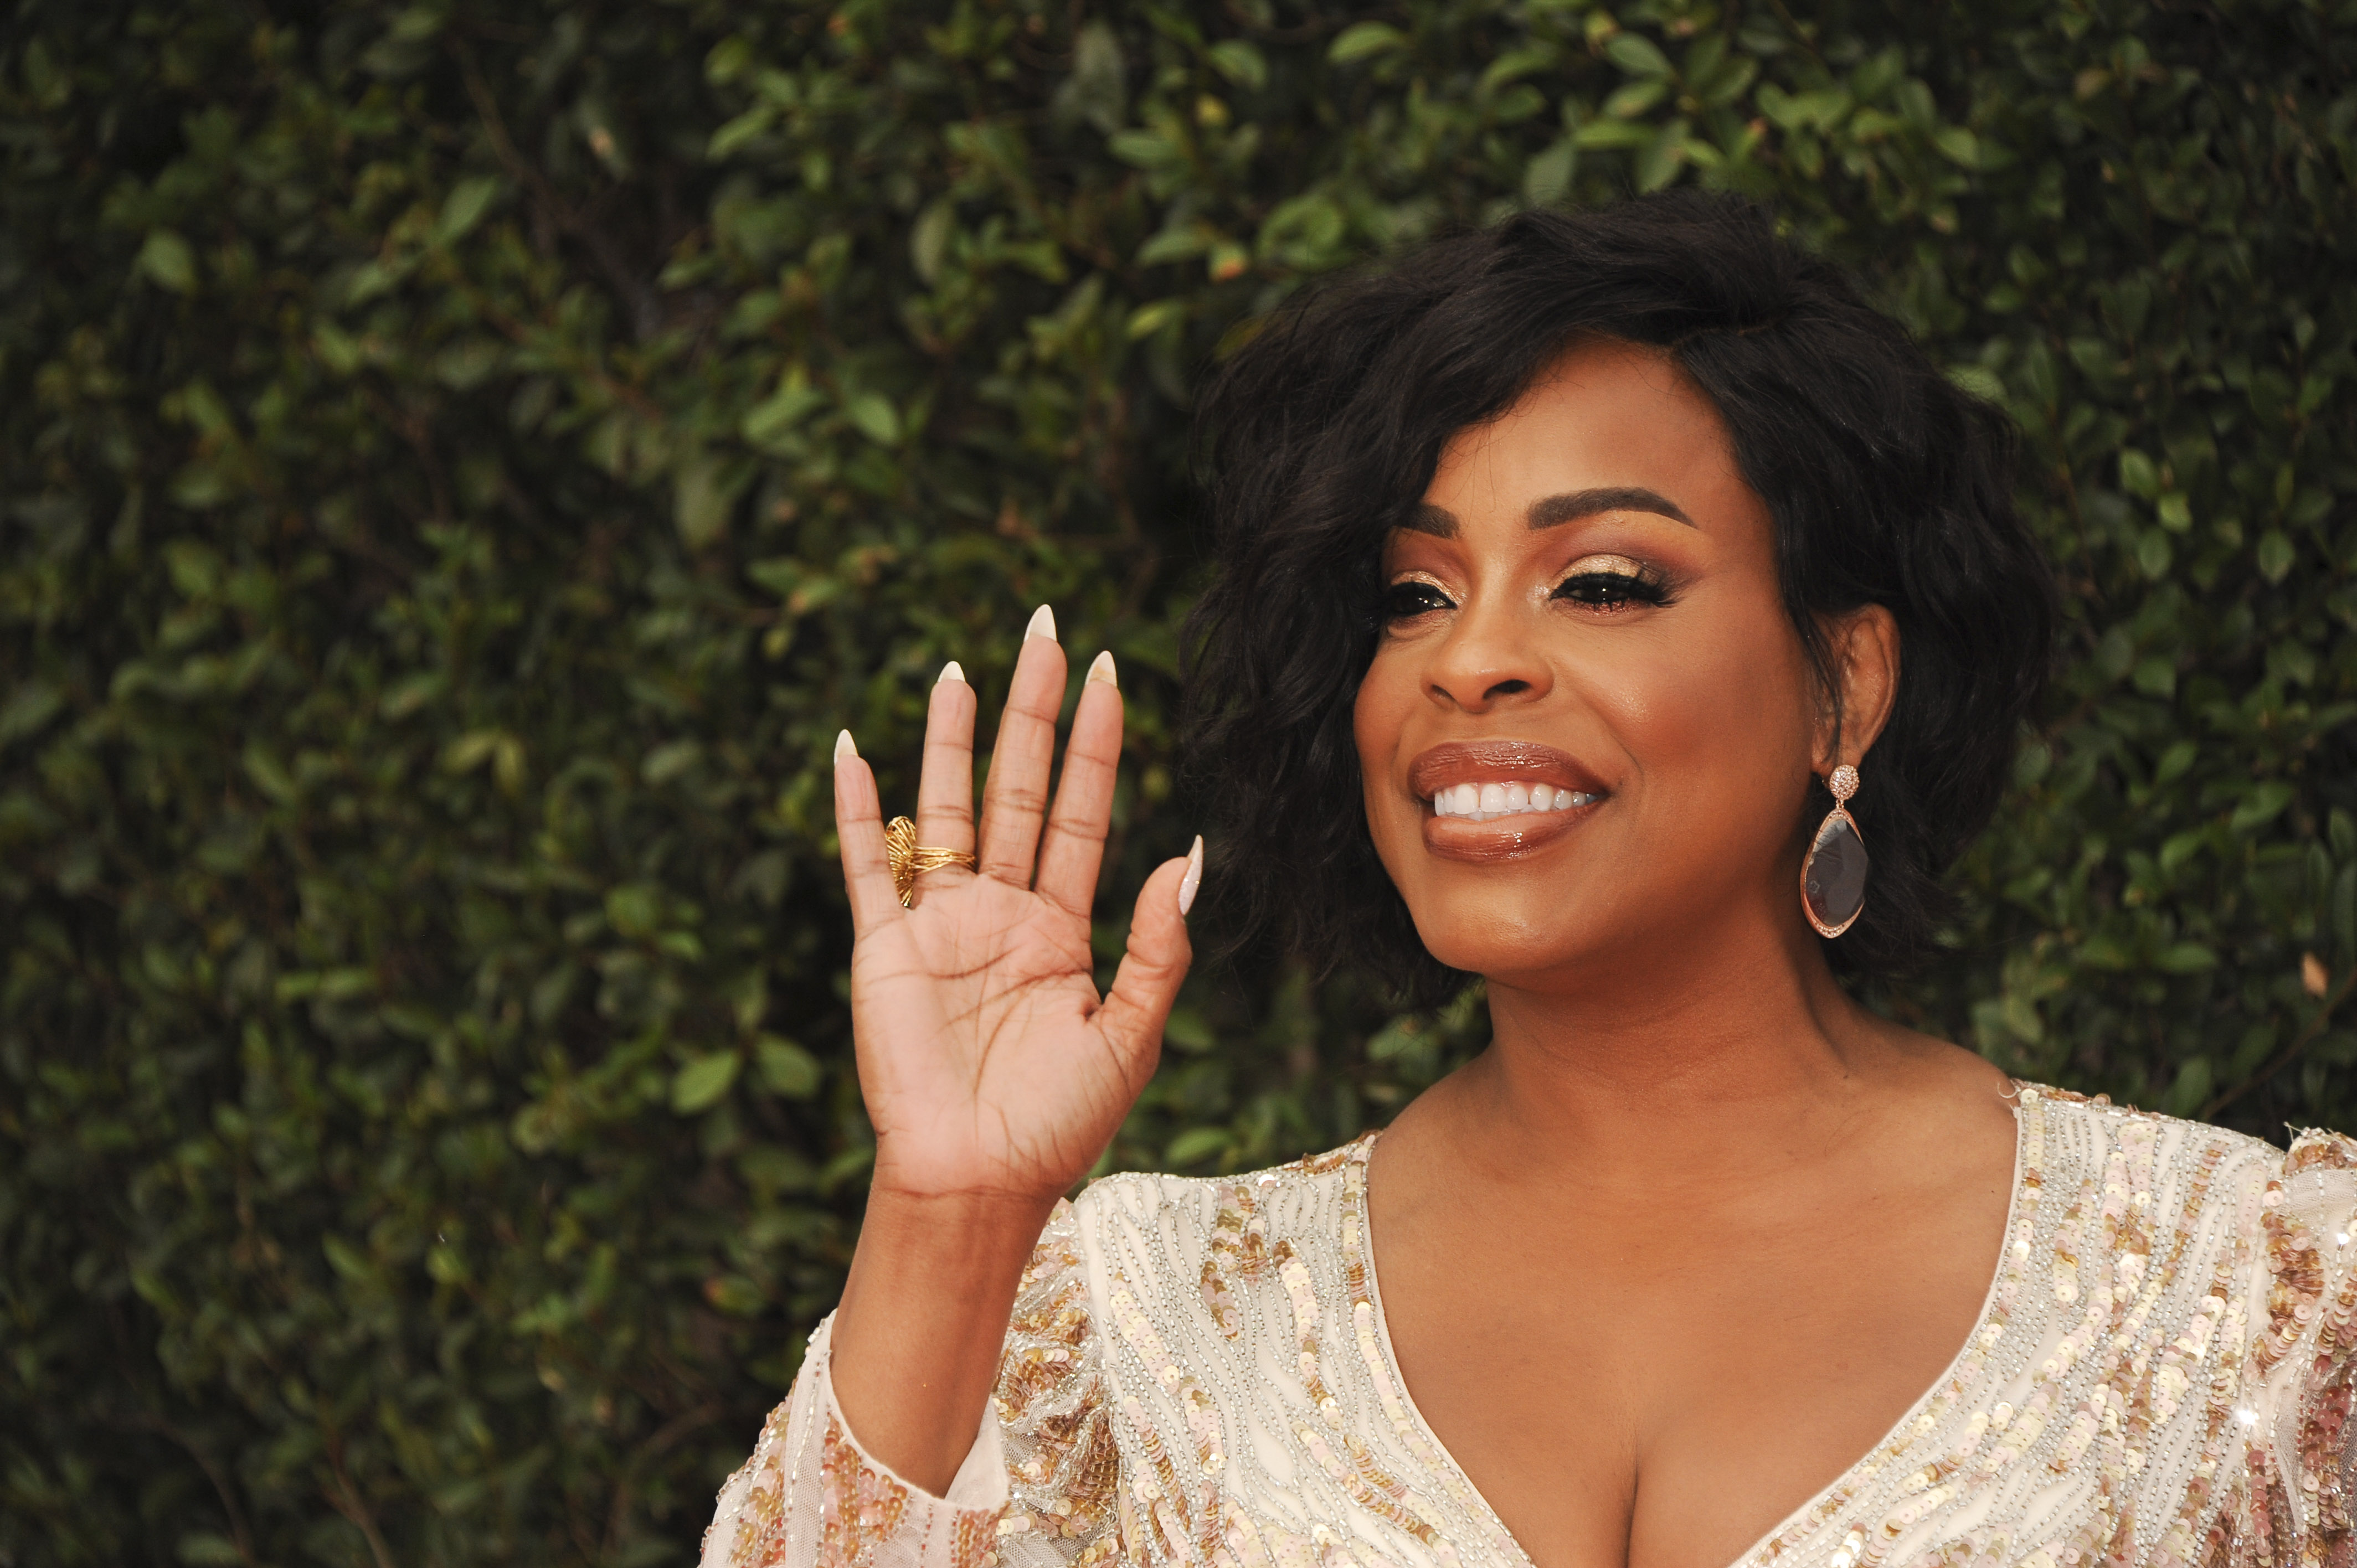 The 49th NAACP Image Awards arrivals  Featuring: Niecy Nash Where: Los Angeles, California, United States When: 16 Jan 2018 Credit: Apega/WENN.com